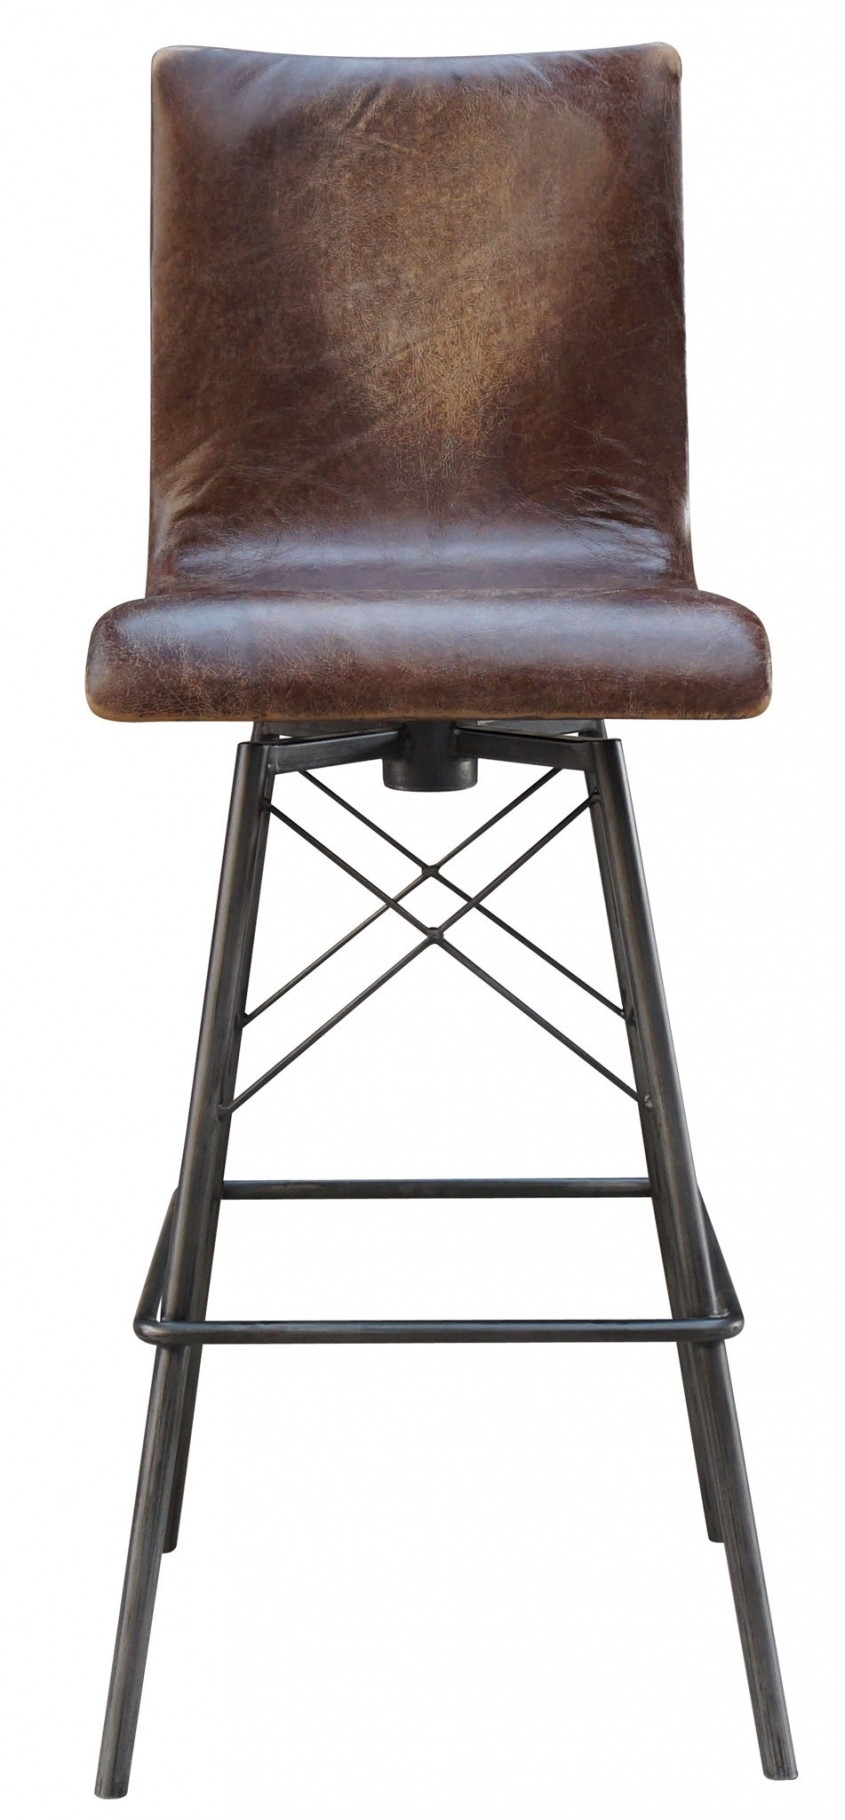 Awesome Leather Bar Stools For Home Furniture With Leather Swivel Bar Stools